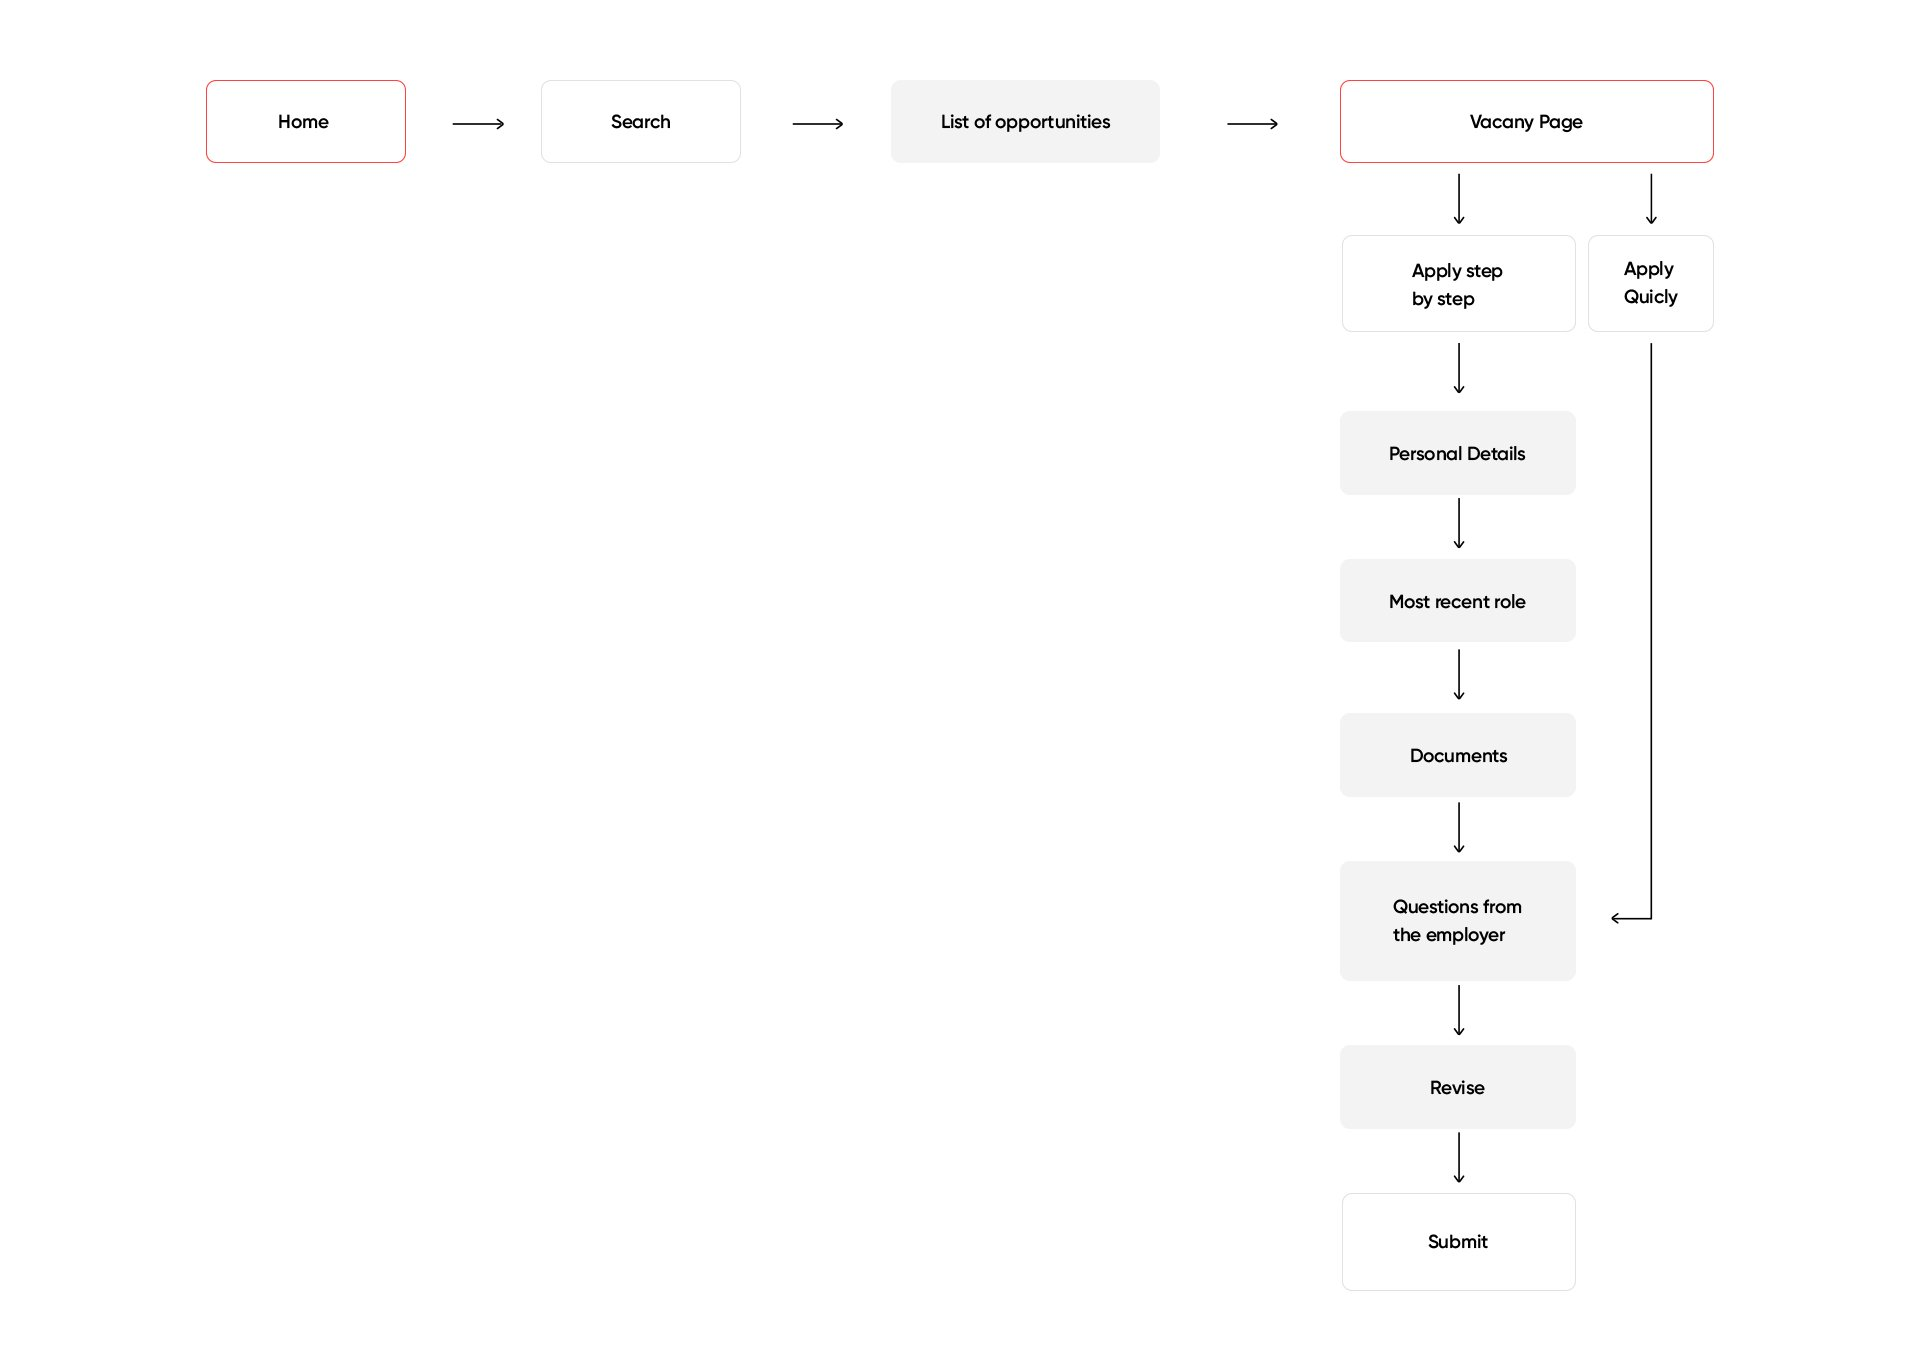 User flow designed for our concept app.